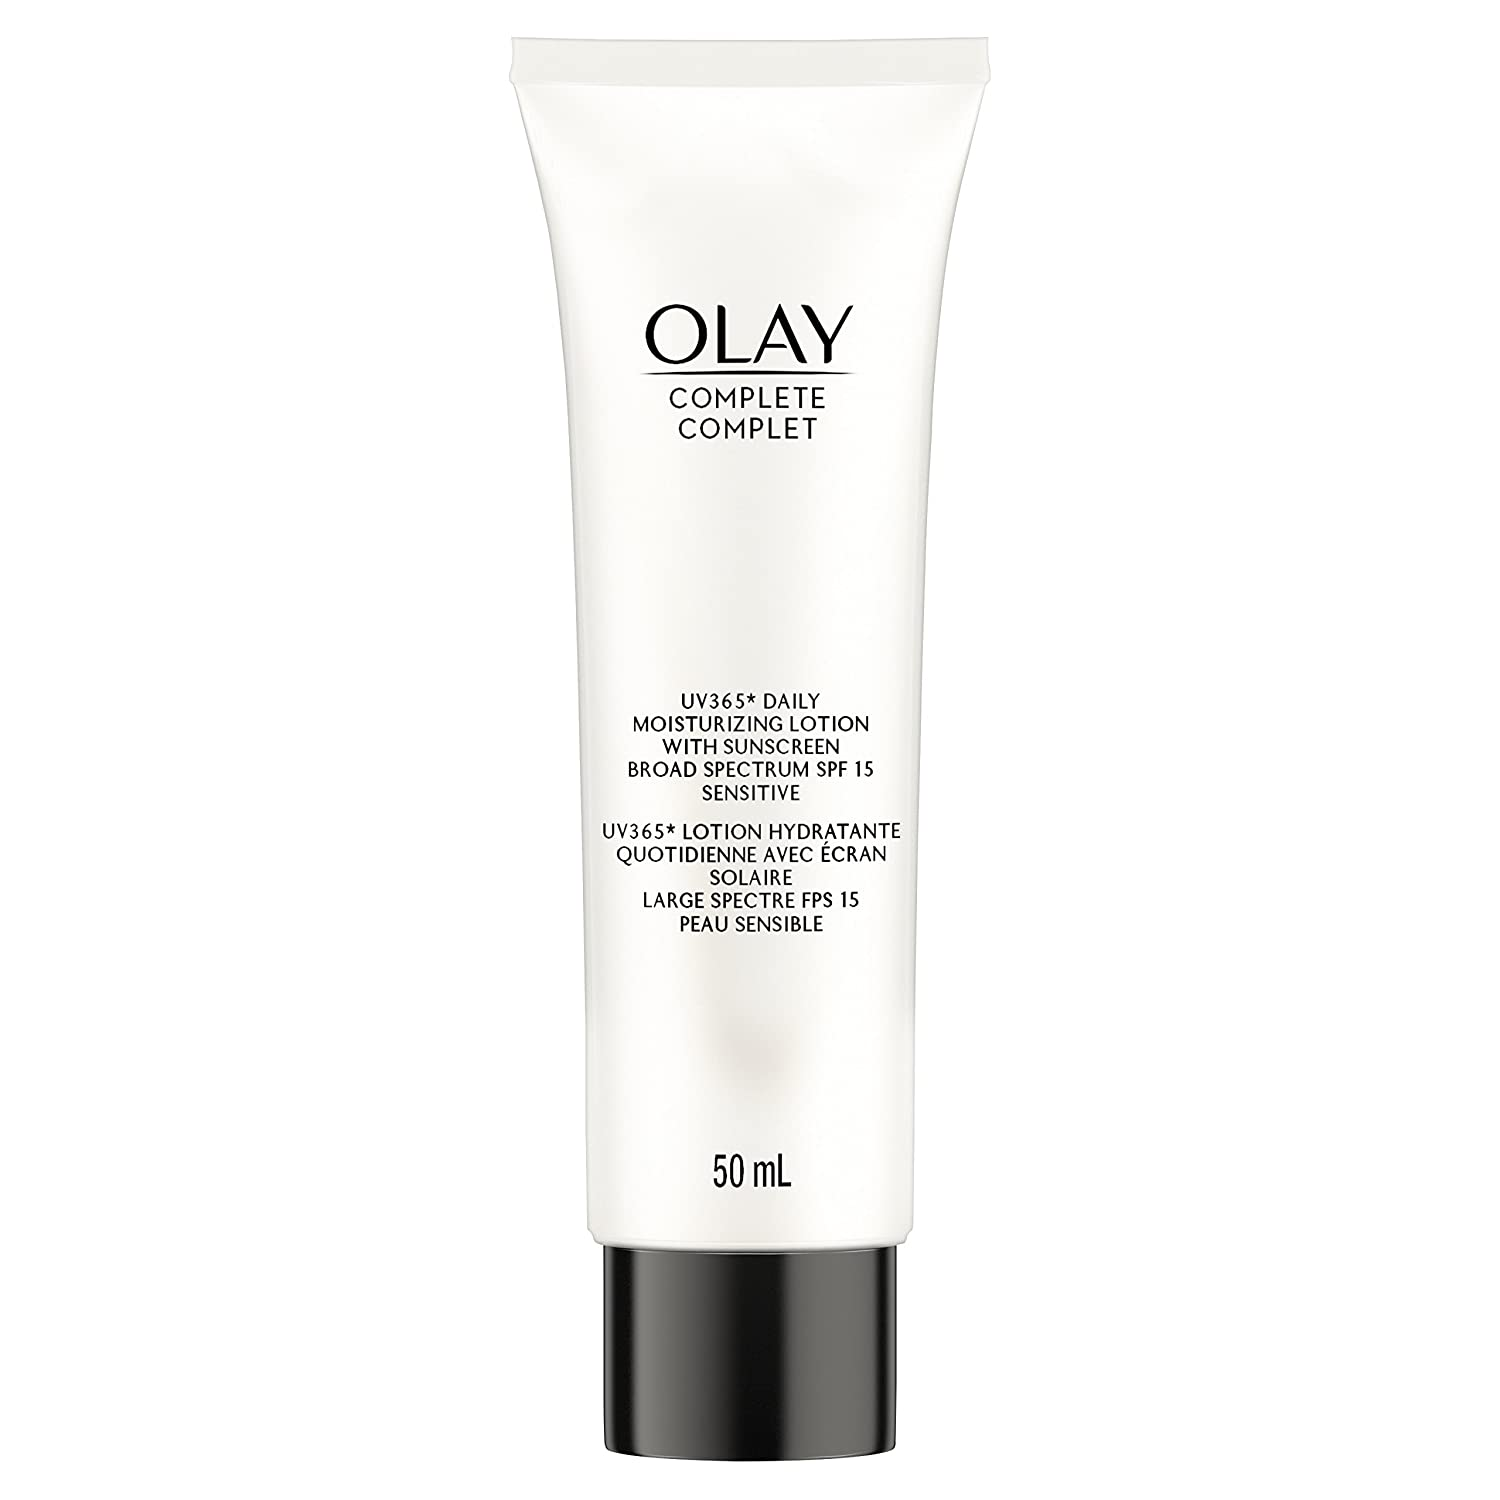 Olay Complete Daily Moisturizing Lotion With Sunscreen Broad Spectrum SPF 15, Sensitive, 50 ml Procter and Gamble